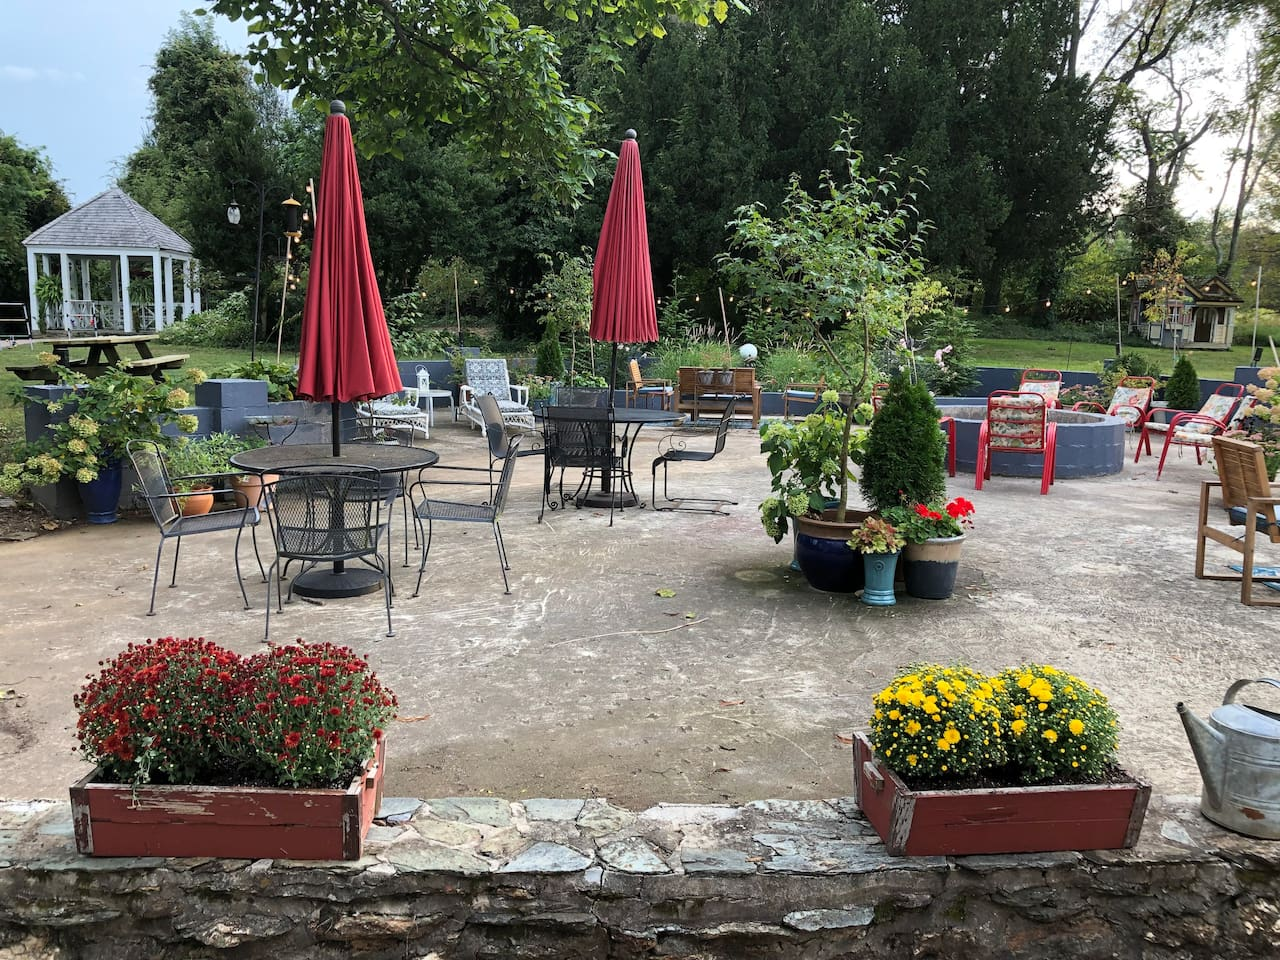 Fall patio landscaped for your outdoor enjoyment with firepit fully stocked with wood! Our guests favorite time spent on the farm all year long is around the huge firepit.